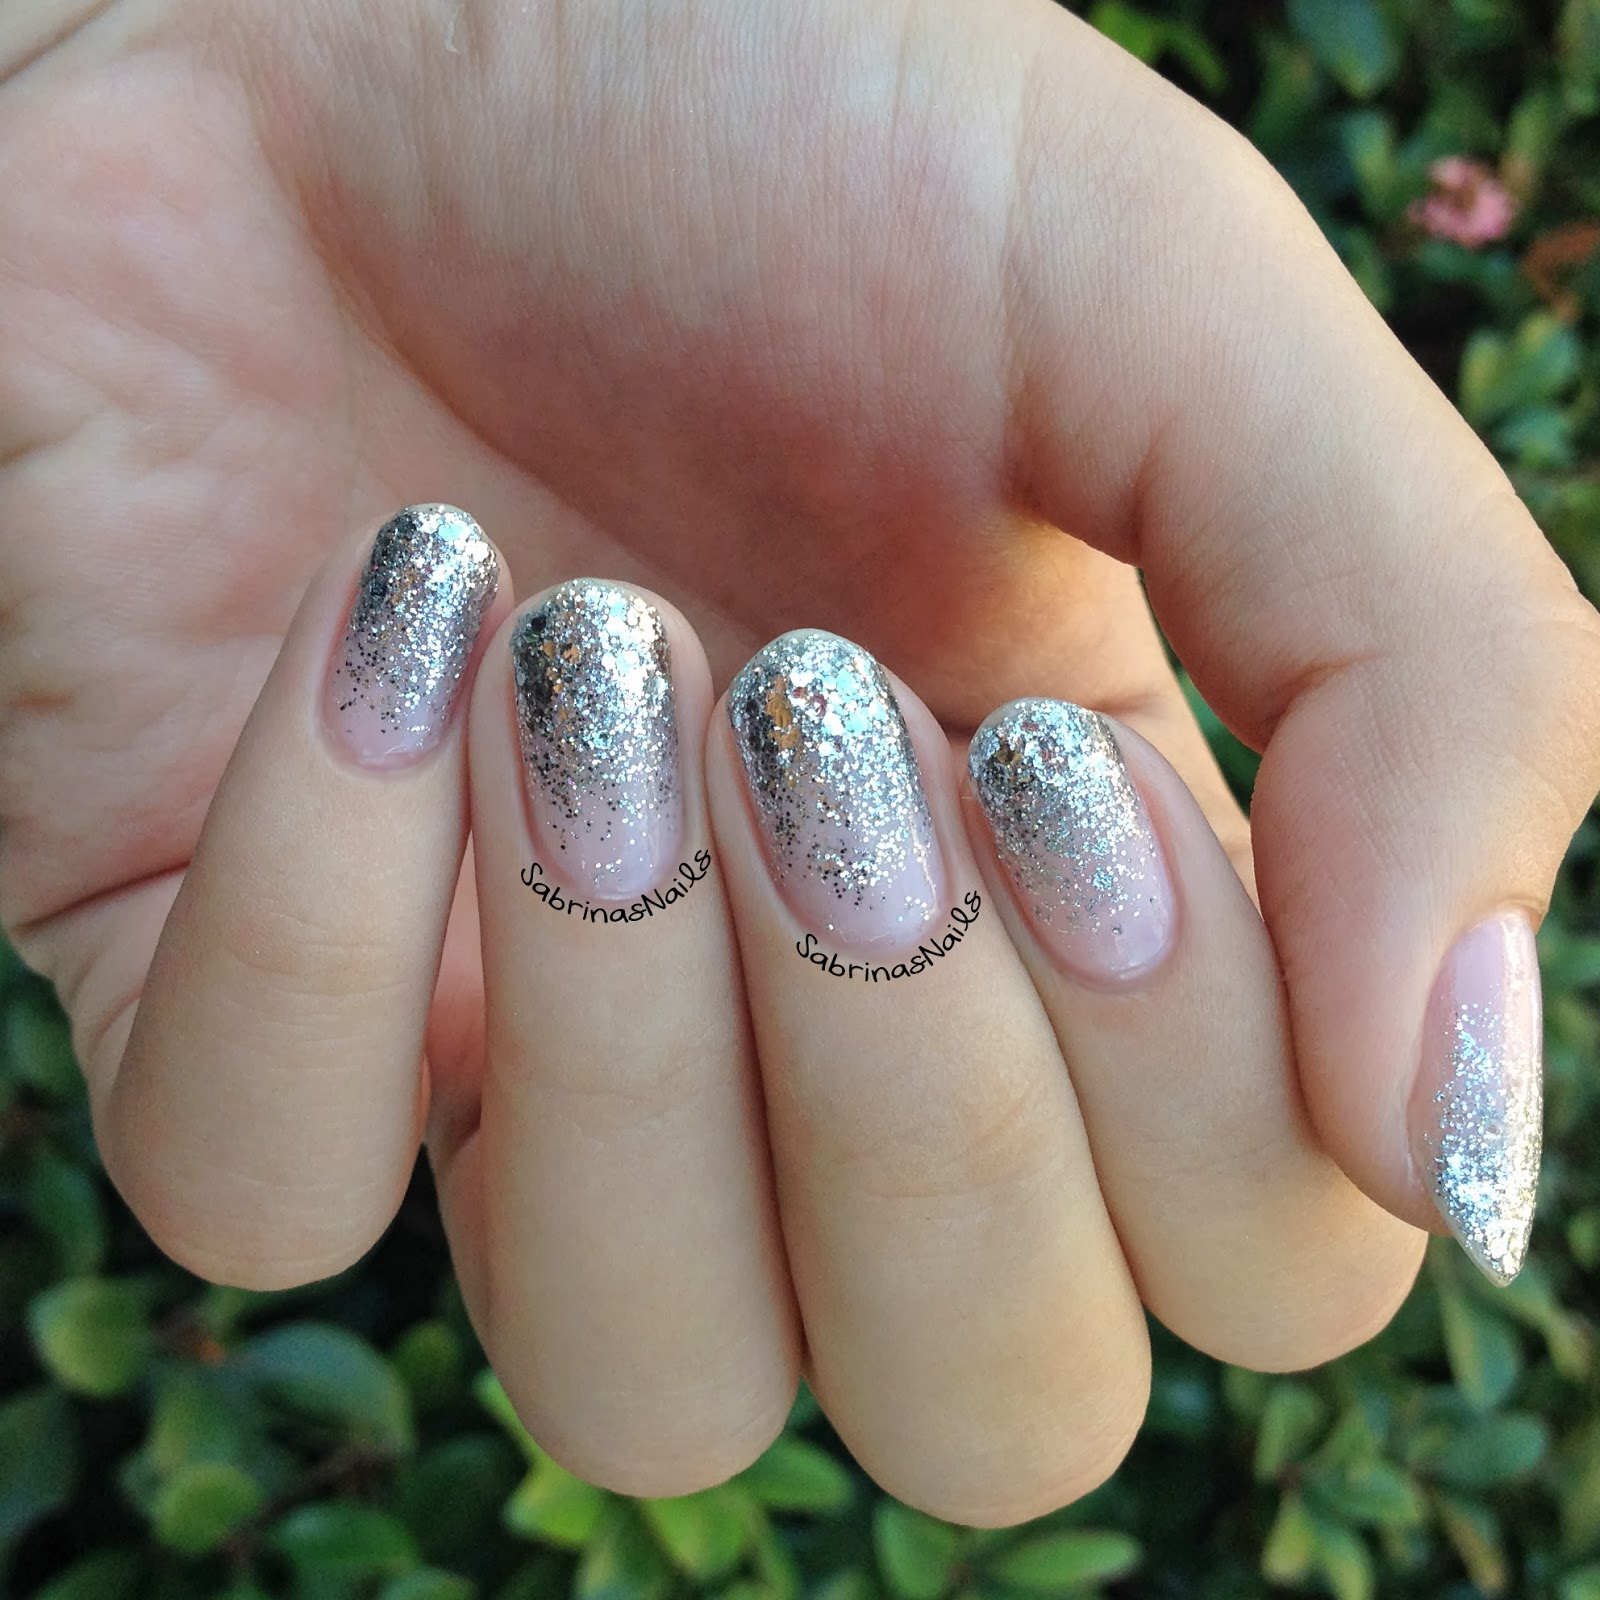 Sabrinas Nails: Silver Glitter Gradient + New Nail Shape!